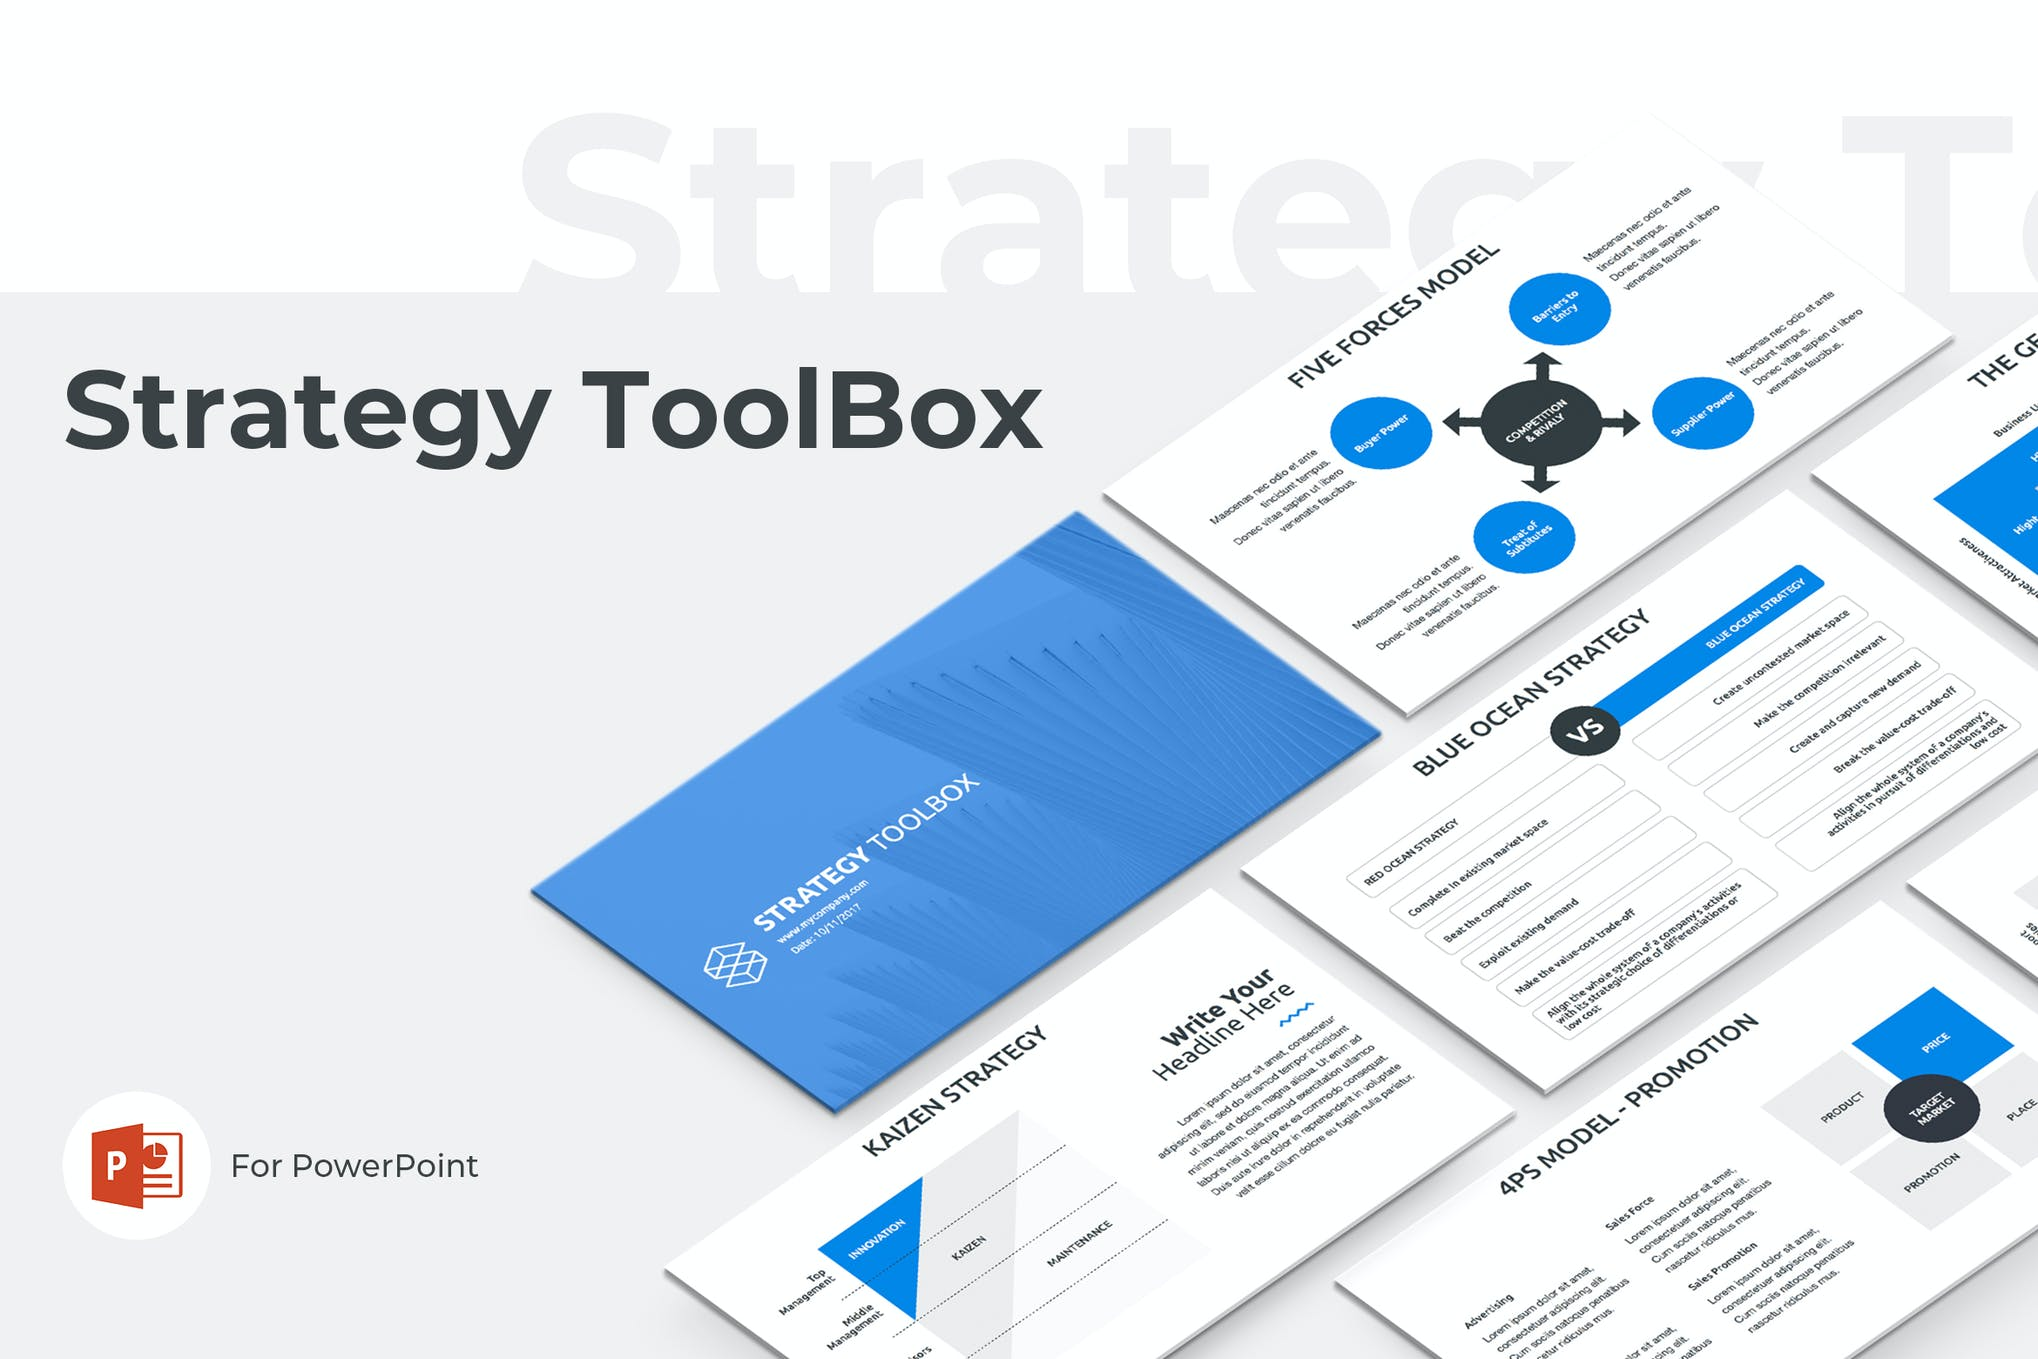 Strategy ToolBox PowerPoint Template by Jetz on Envato Elements